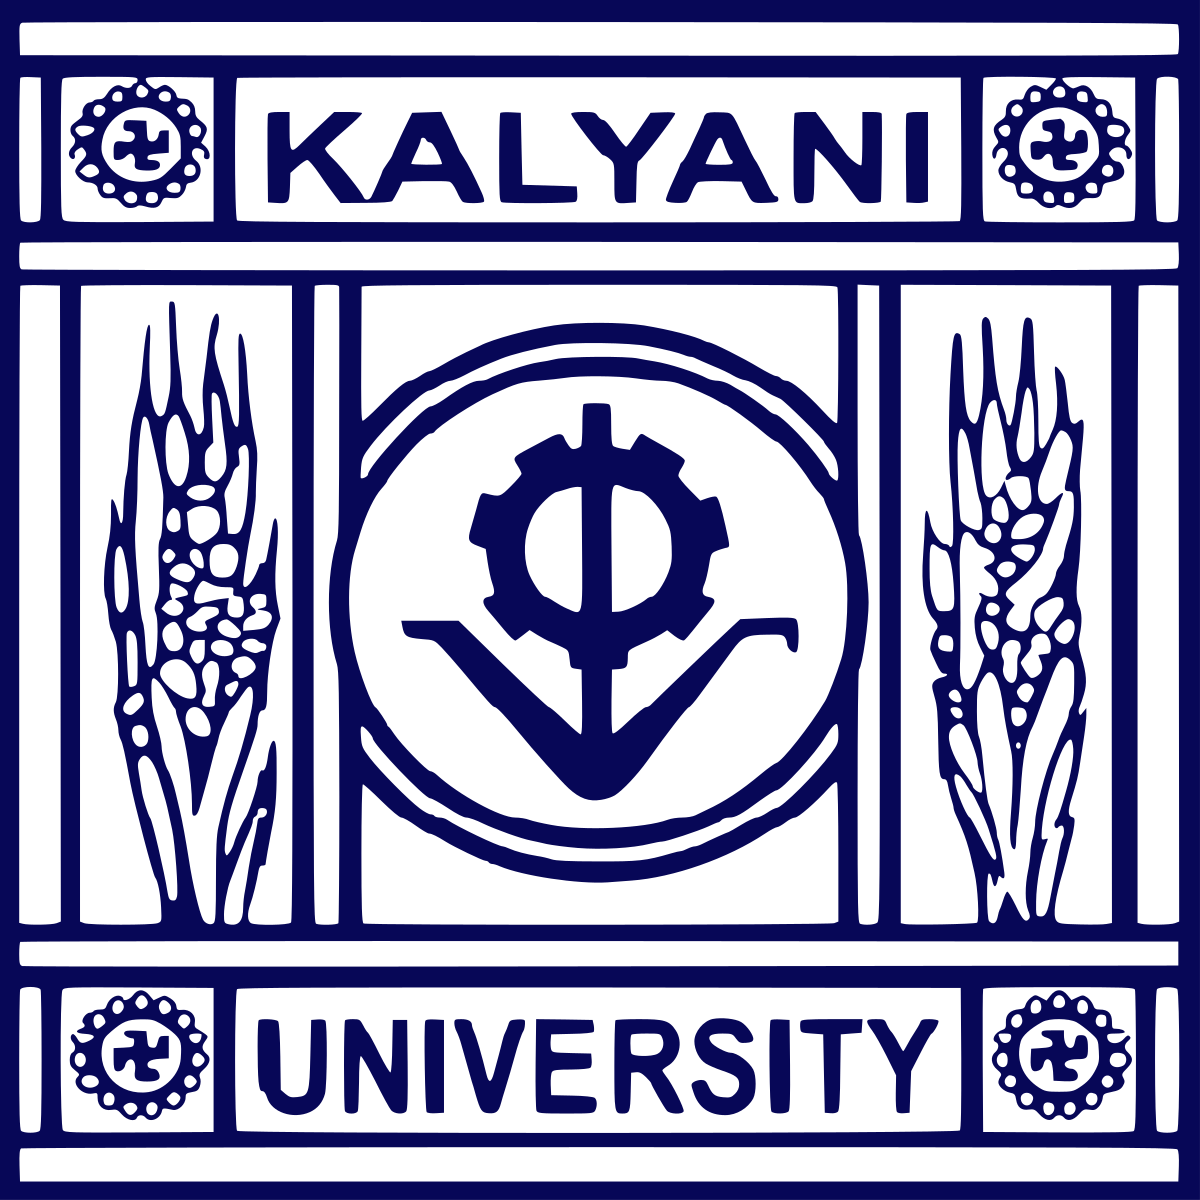 CfP: Conference on Mathematical Sciences & Applications at University of Kalyani [Feb 26-28]: Submit by Dec 31